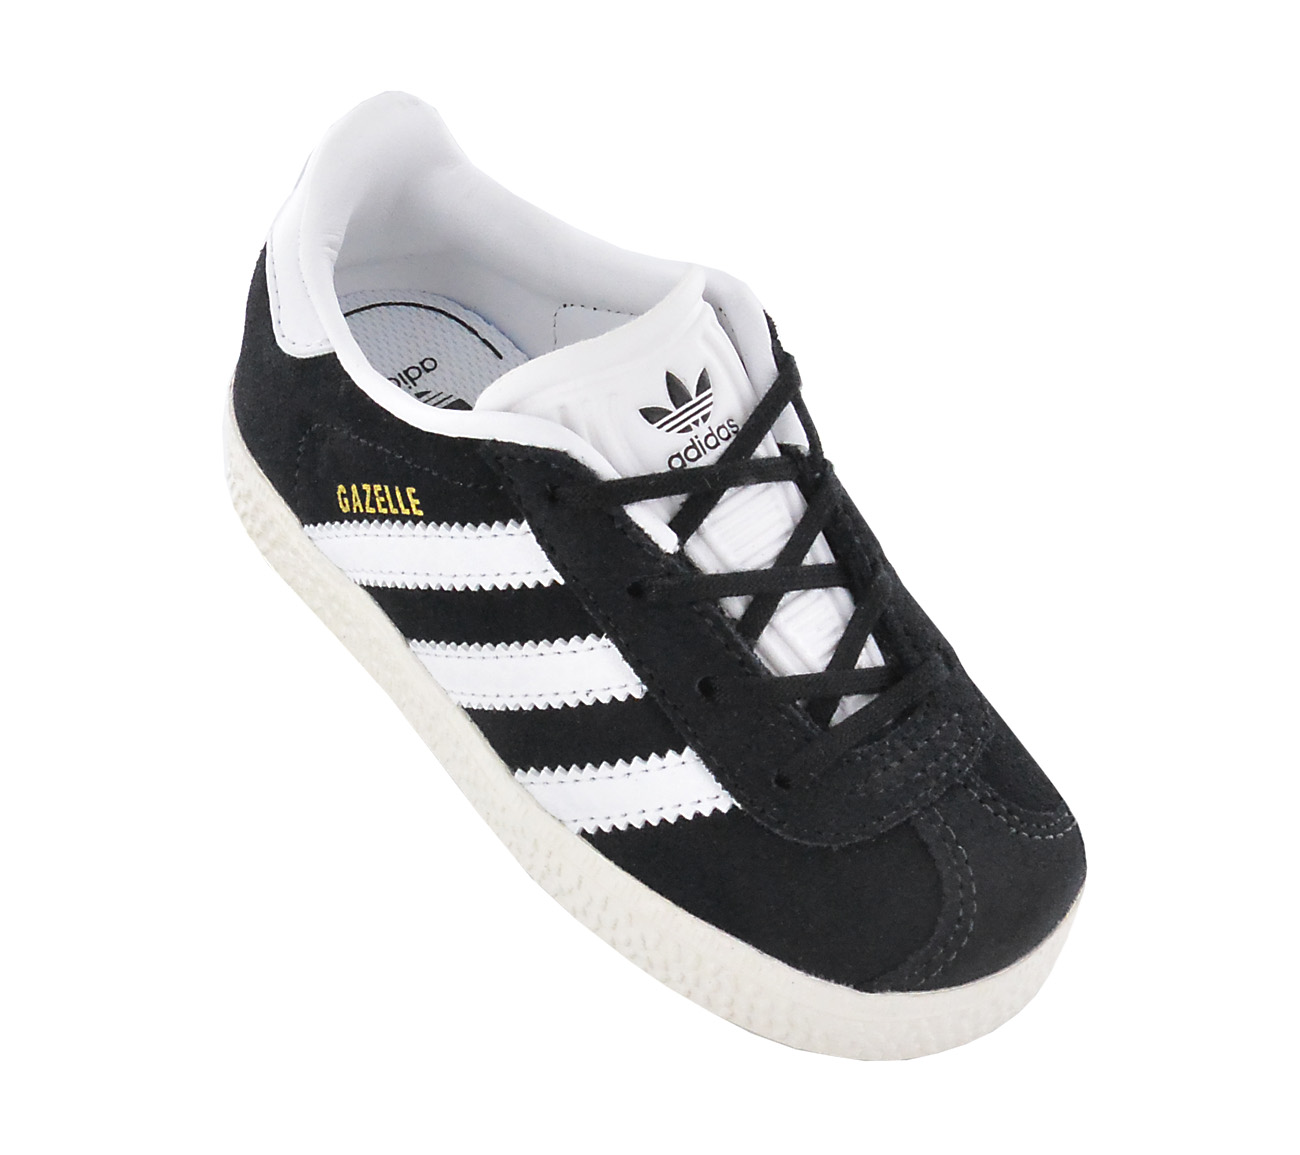 Adidas Gazelle Y Childrens Shoes Leather Boys Girls Sneaker Black ... 1e799e8f495